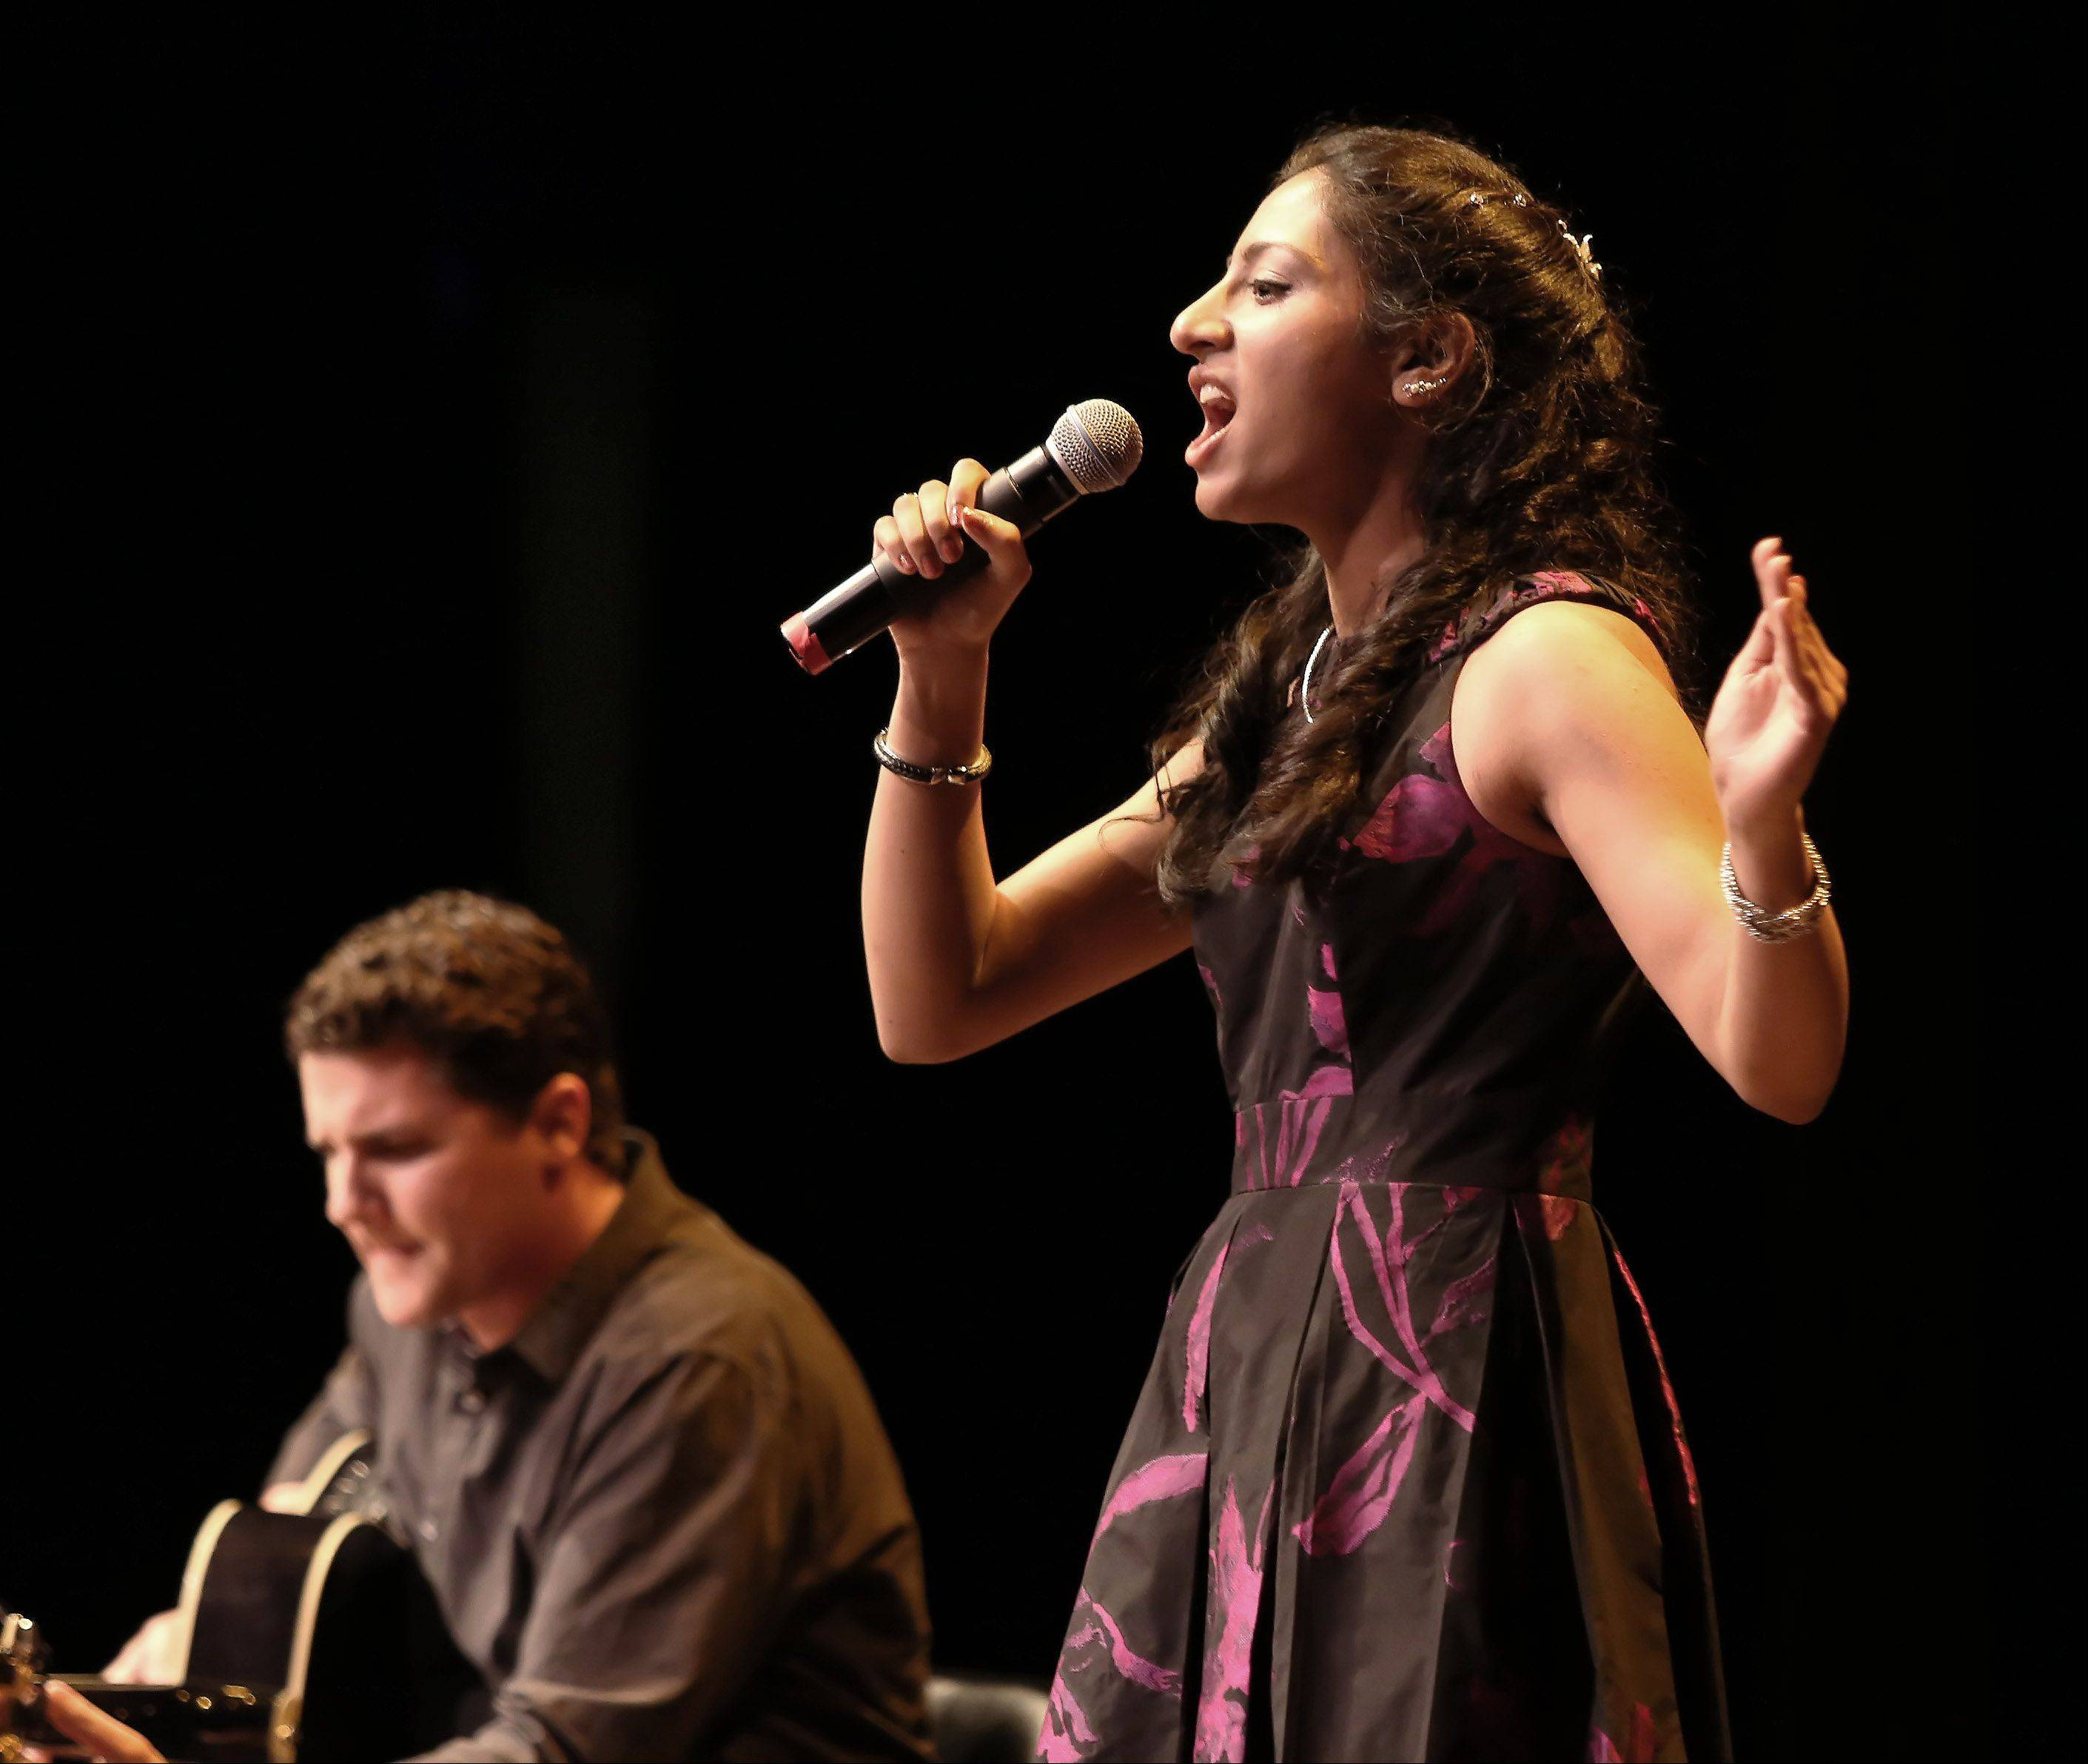 Divya Pillai of Oak Brook sings during the first round of finalists for the Suburban Chicago's Got Talent competition Sunday night at the Metropolis Performing Arts Centre in Arlington Heights. The summer-long talent contest is presented by the Daily Herald and sponsored by the Arlington Heights Chamber of Commerce.